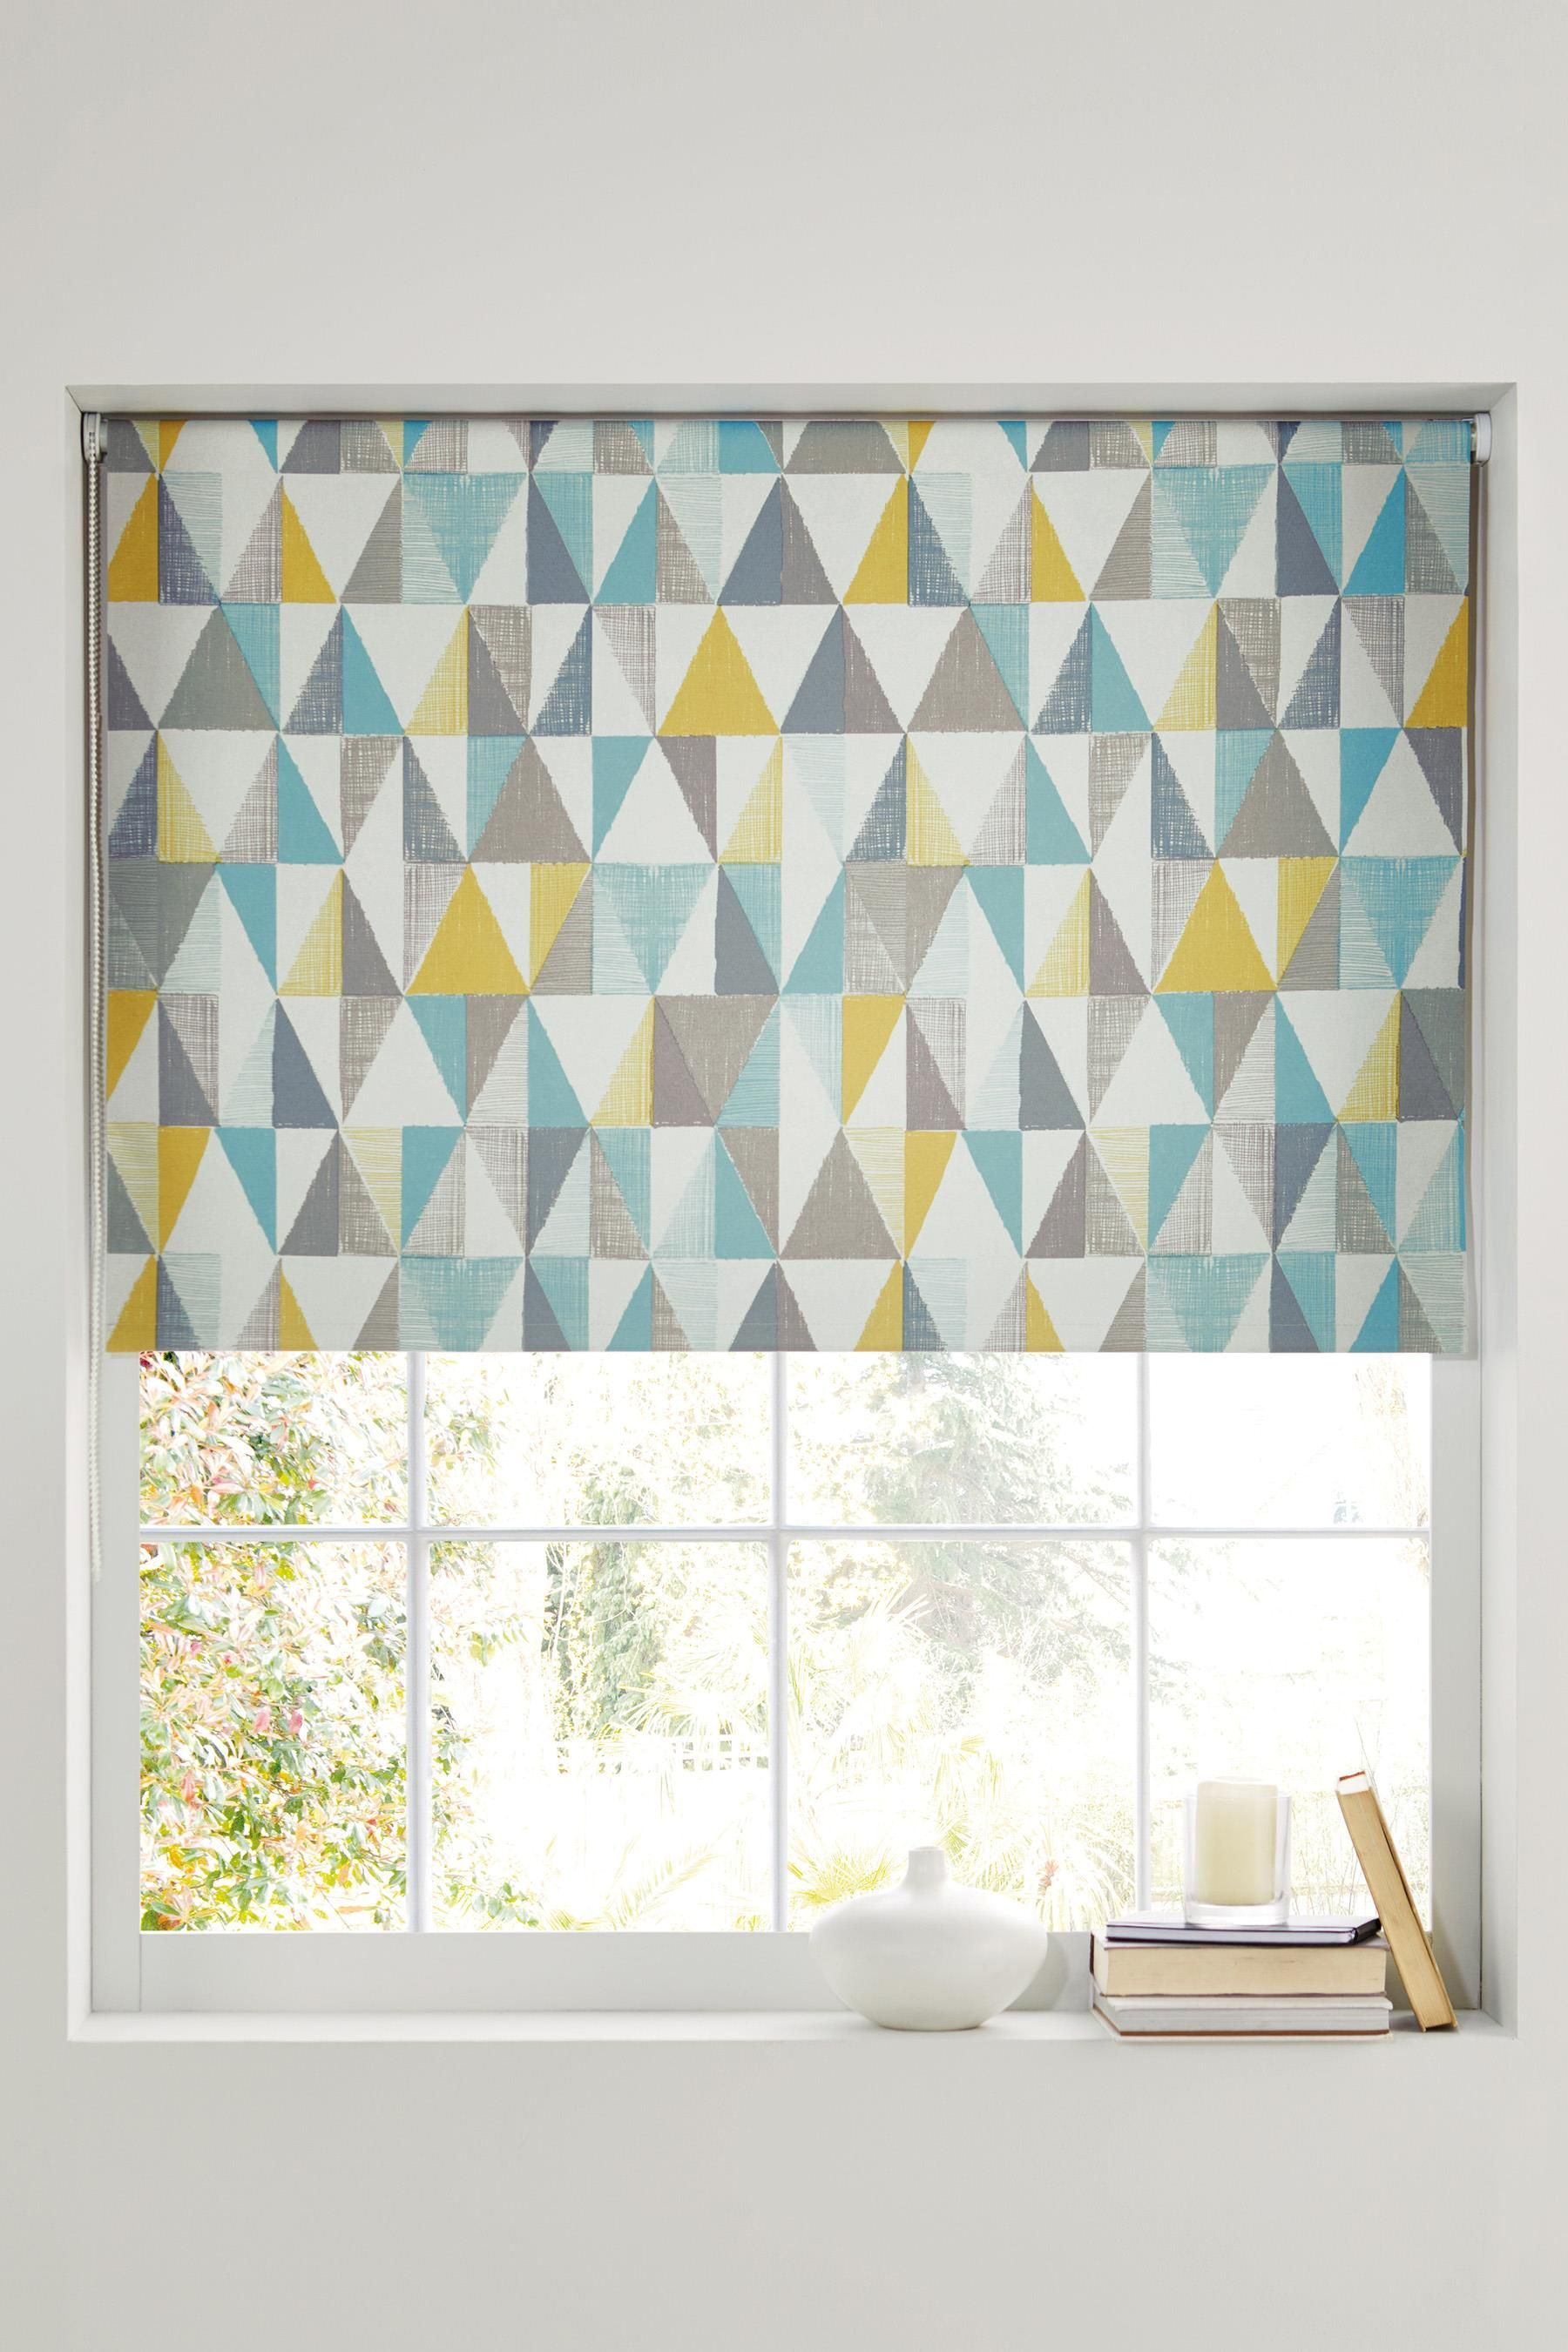 Cheap bathroom blinds uk - Buy Textured Geo Print Blackout Roller Blind From The Next Uk Online Shop